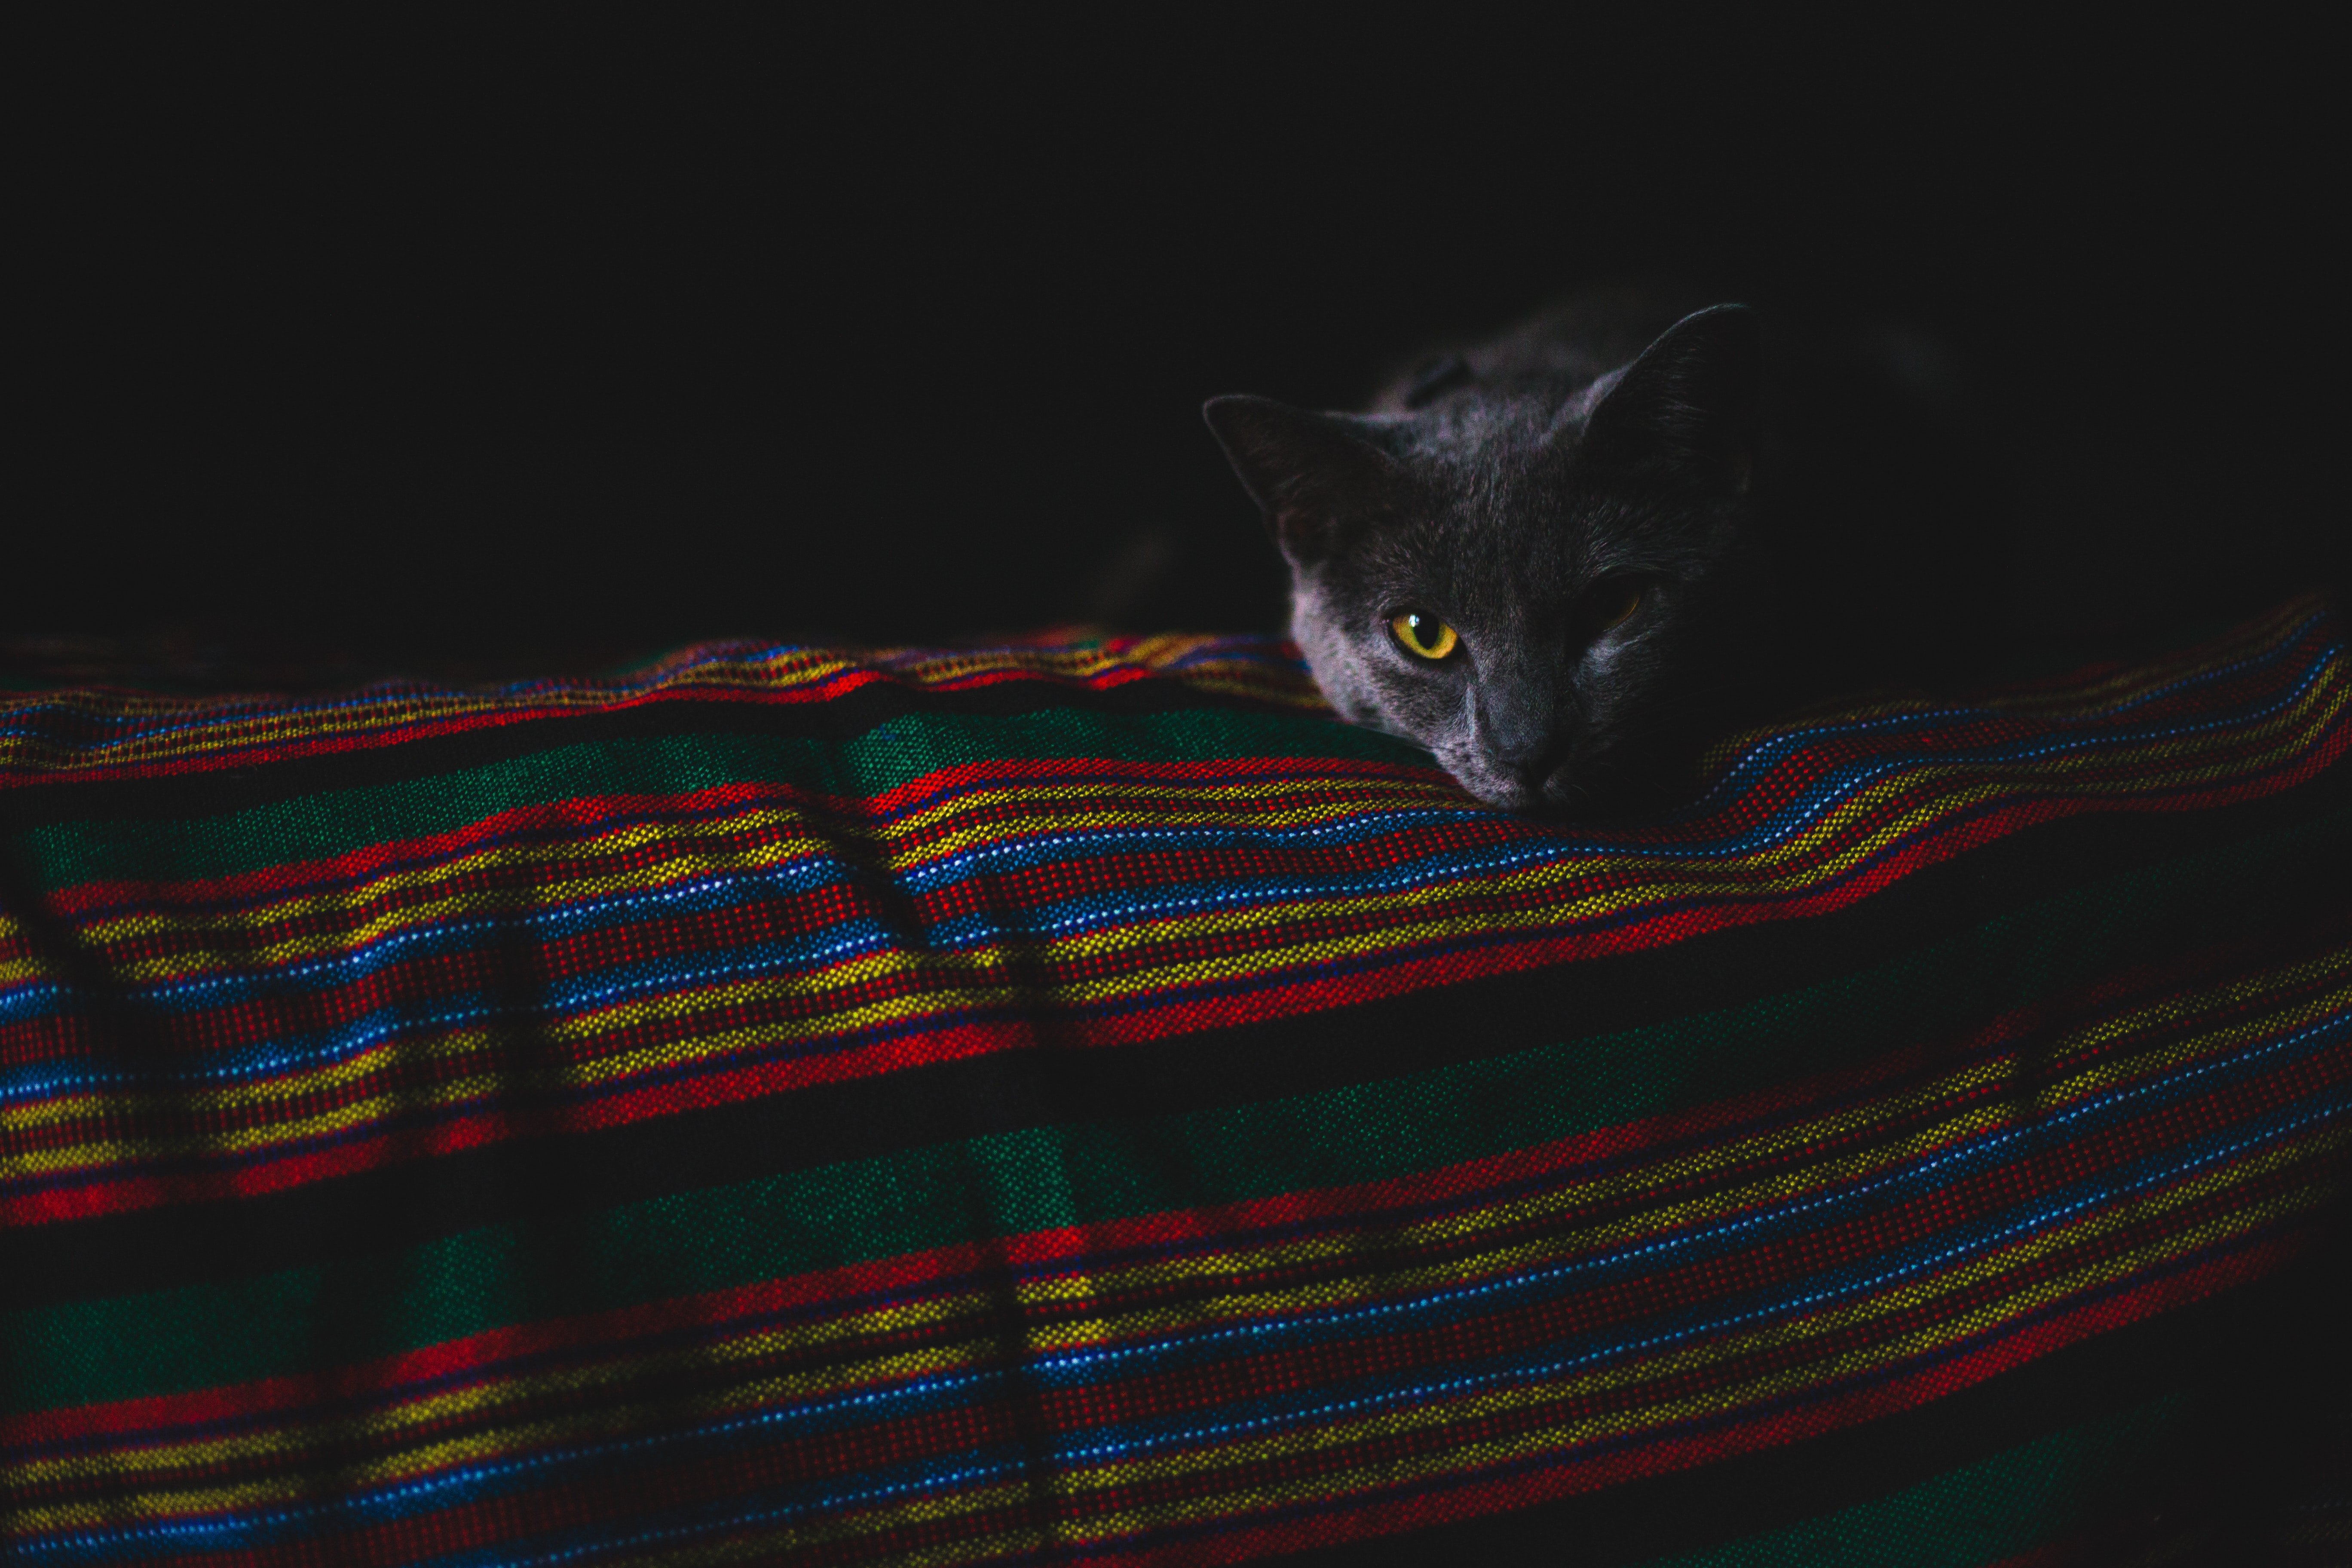 A blue Russian cat lying on a colorful blanket